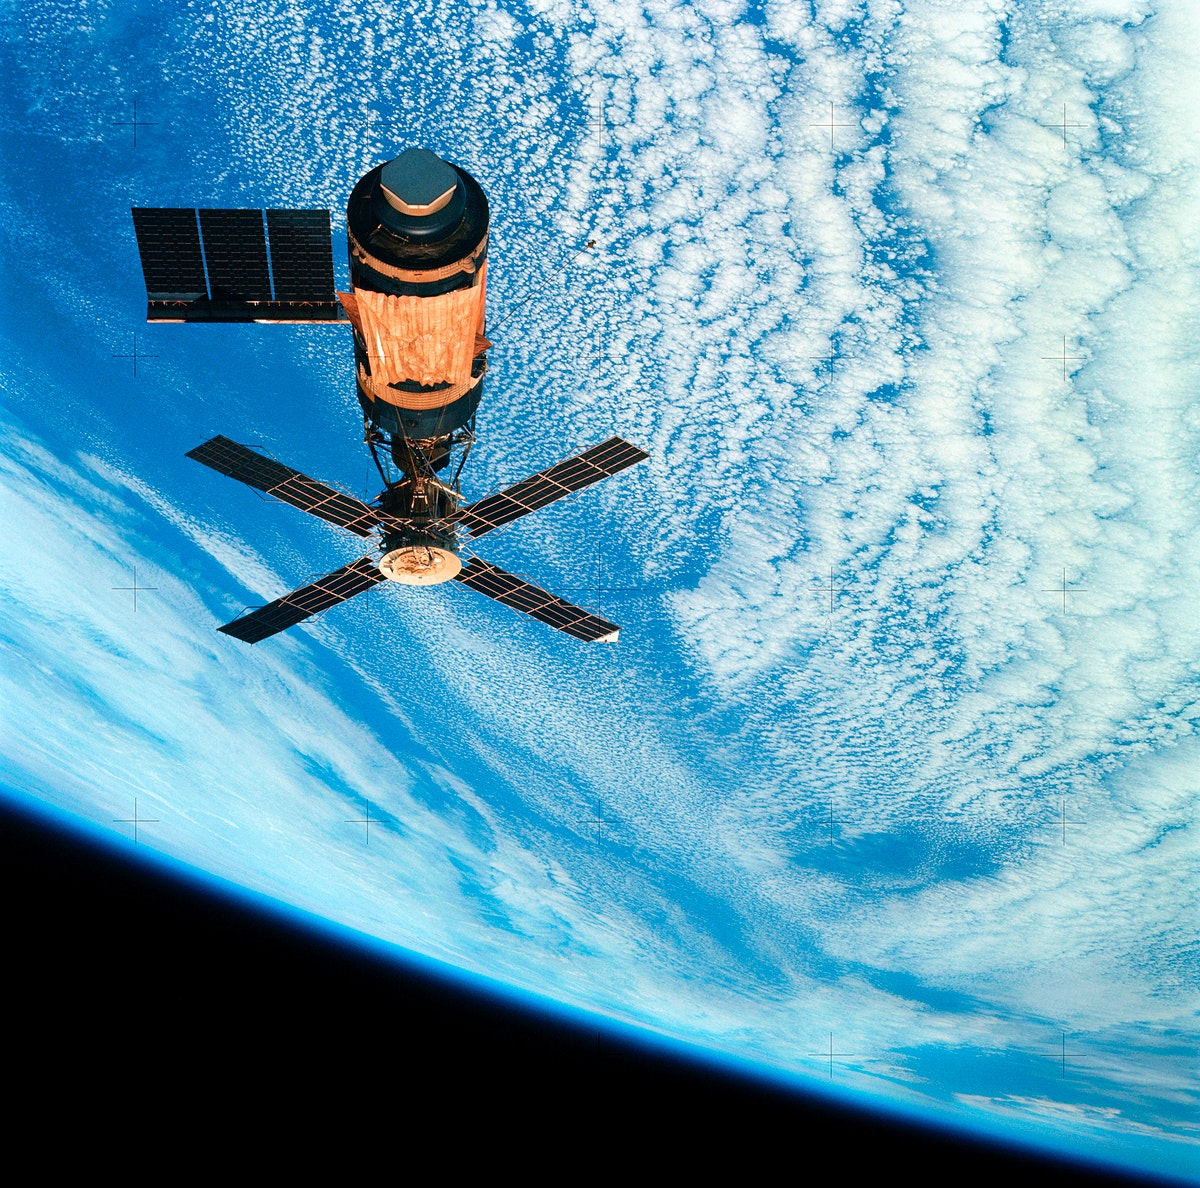 View of Skylab space station cluster in Earth orbit from CSM. Original from NASA. Digitally enhanced by rawpixel.